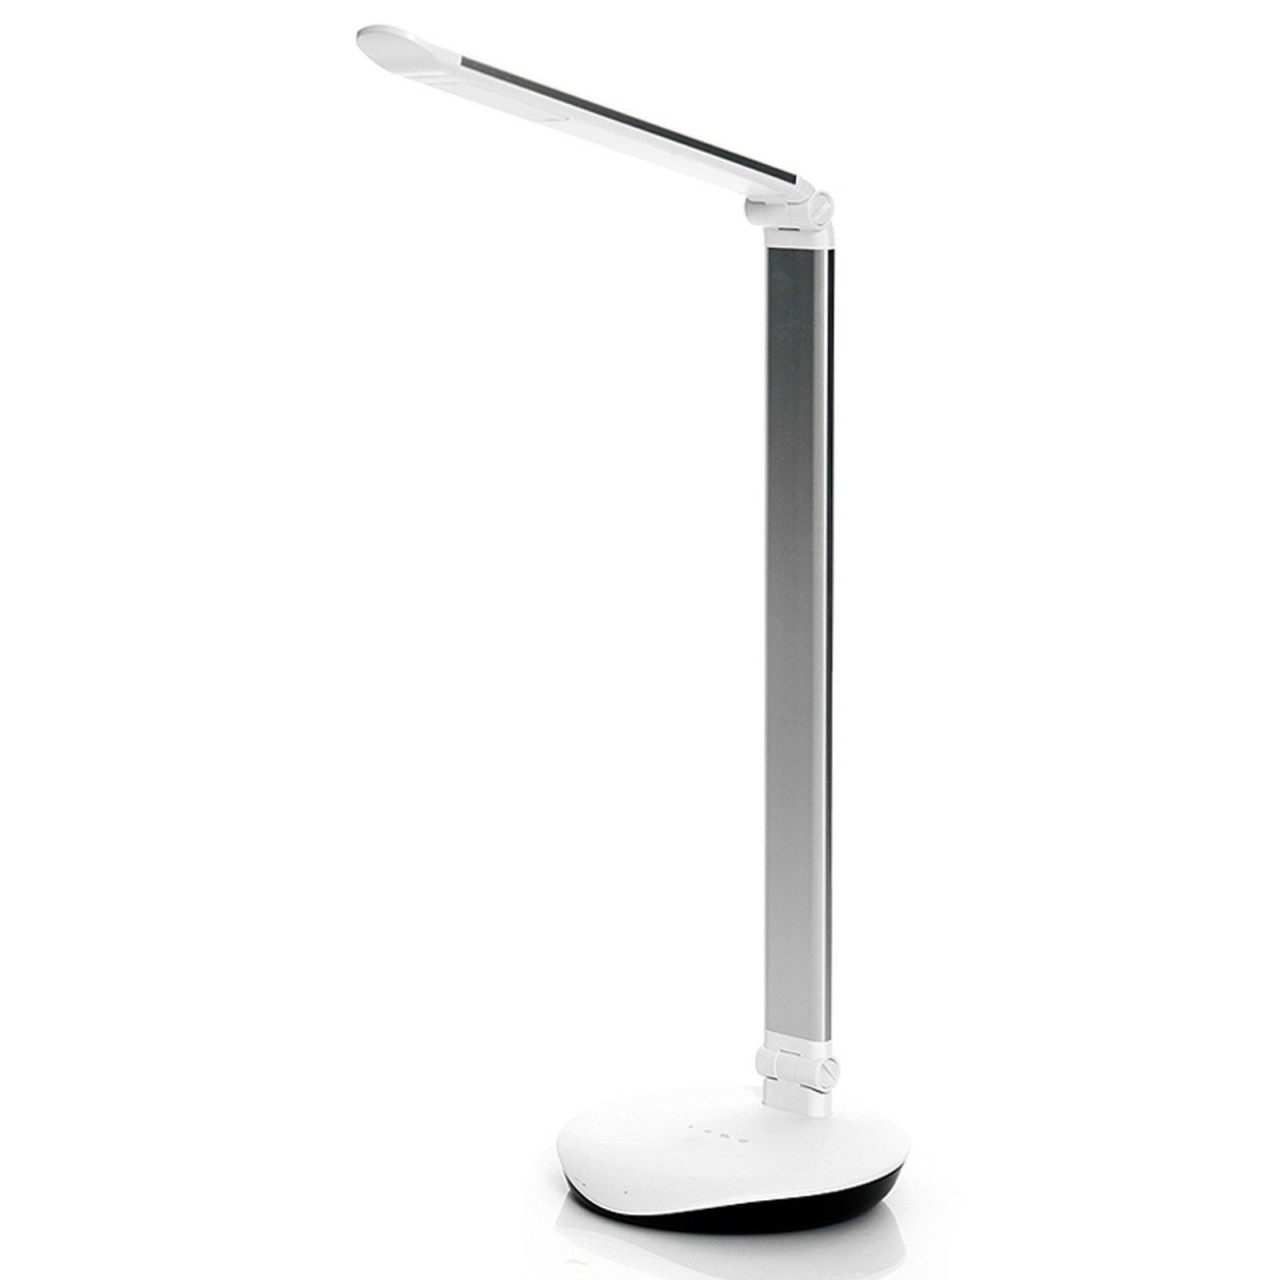 Philips LEVER table lamp LED silver 1x5W in Pakistan